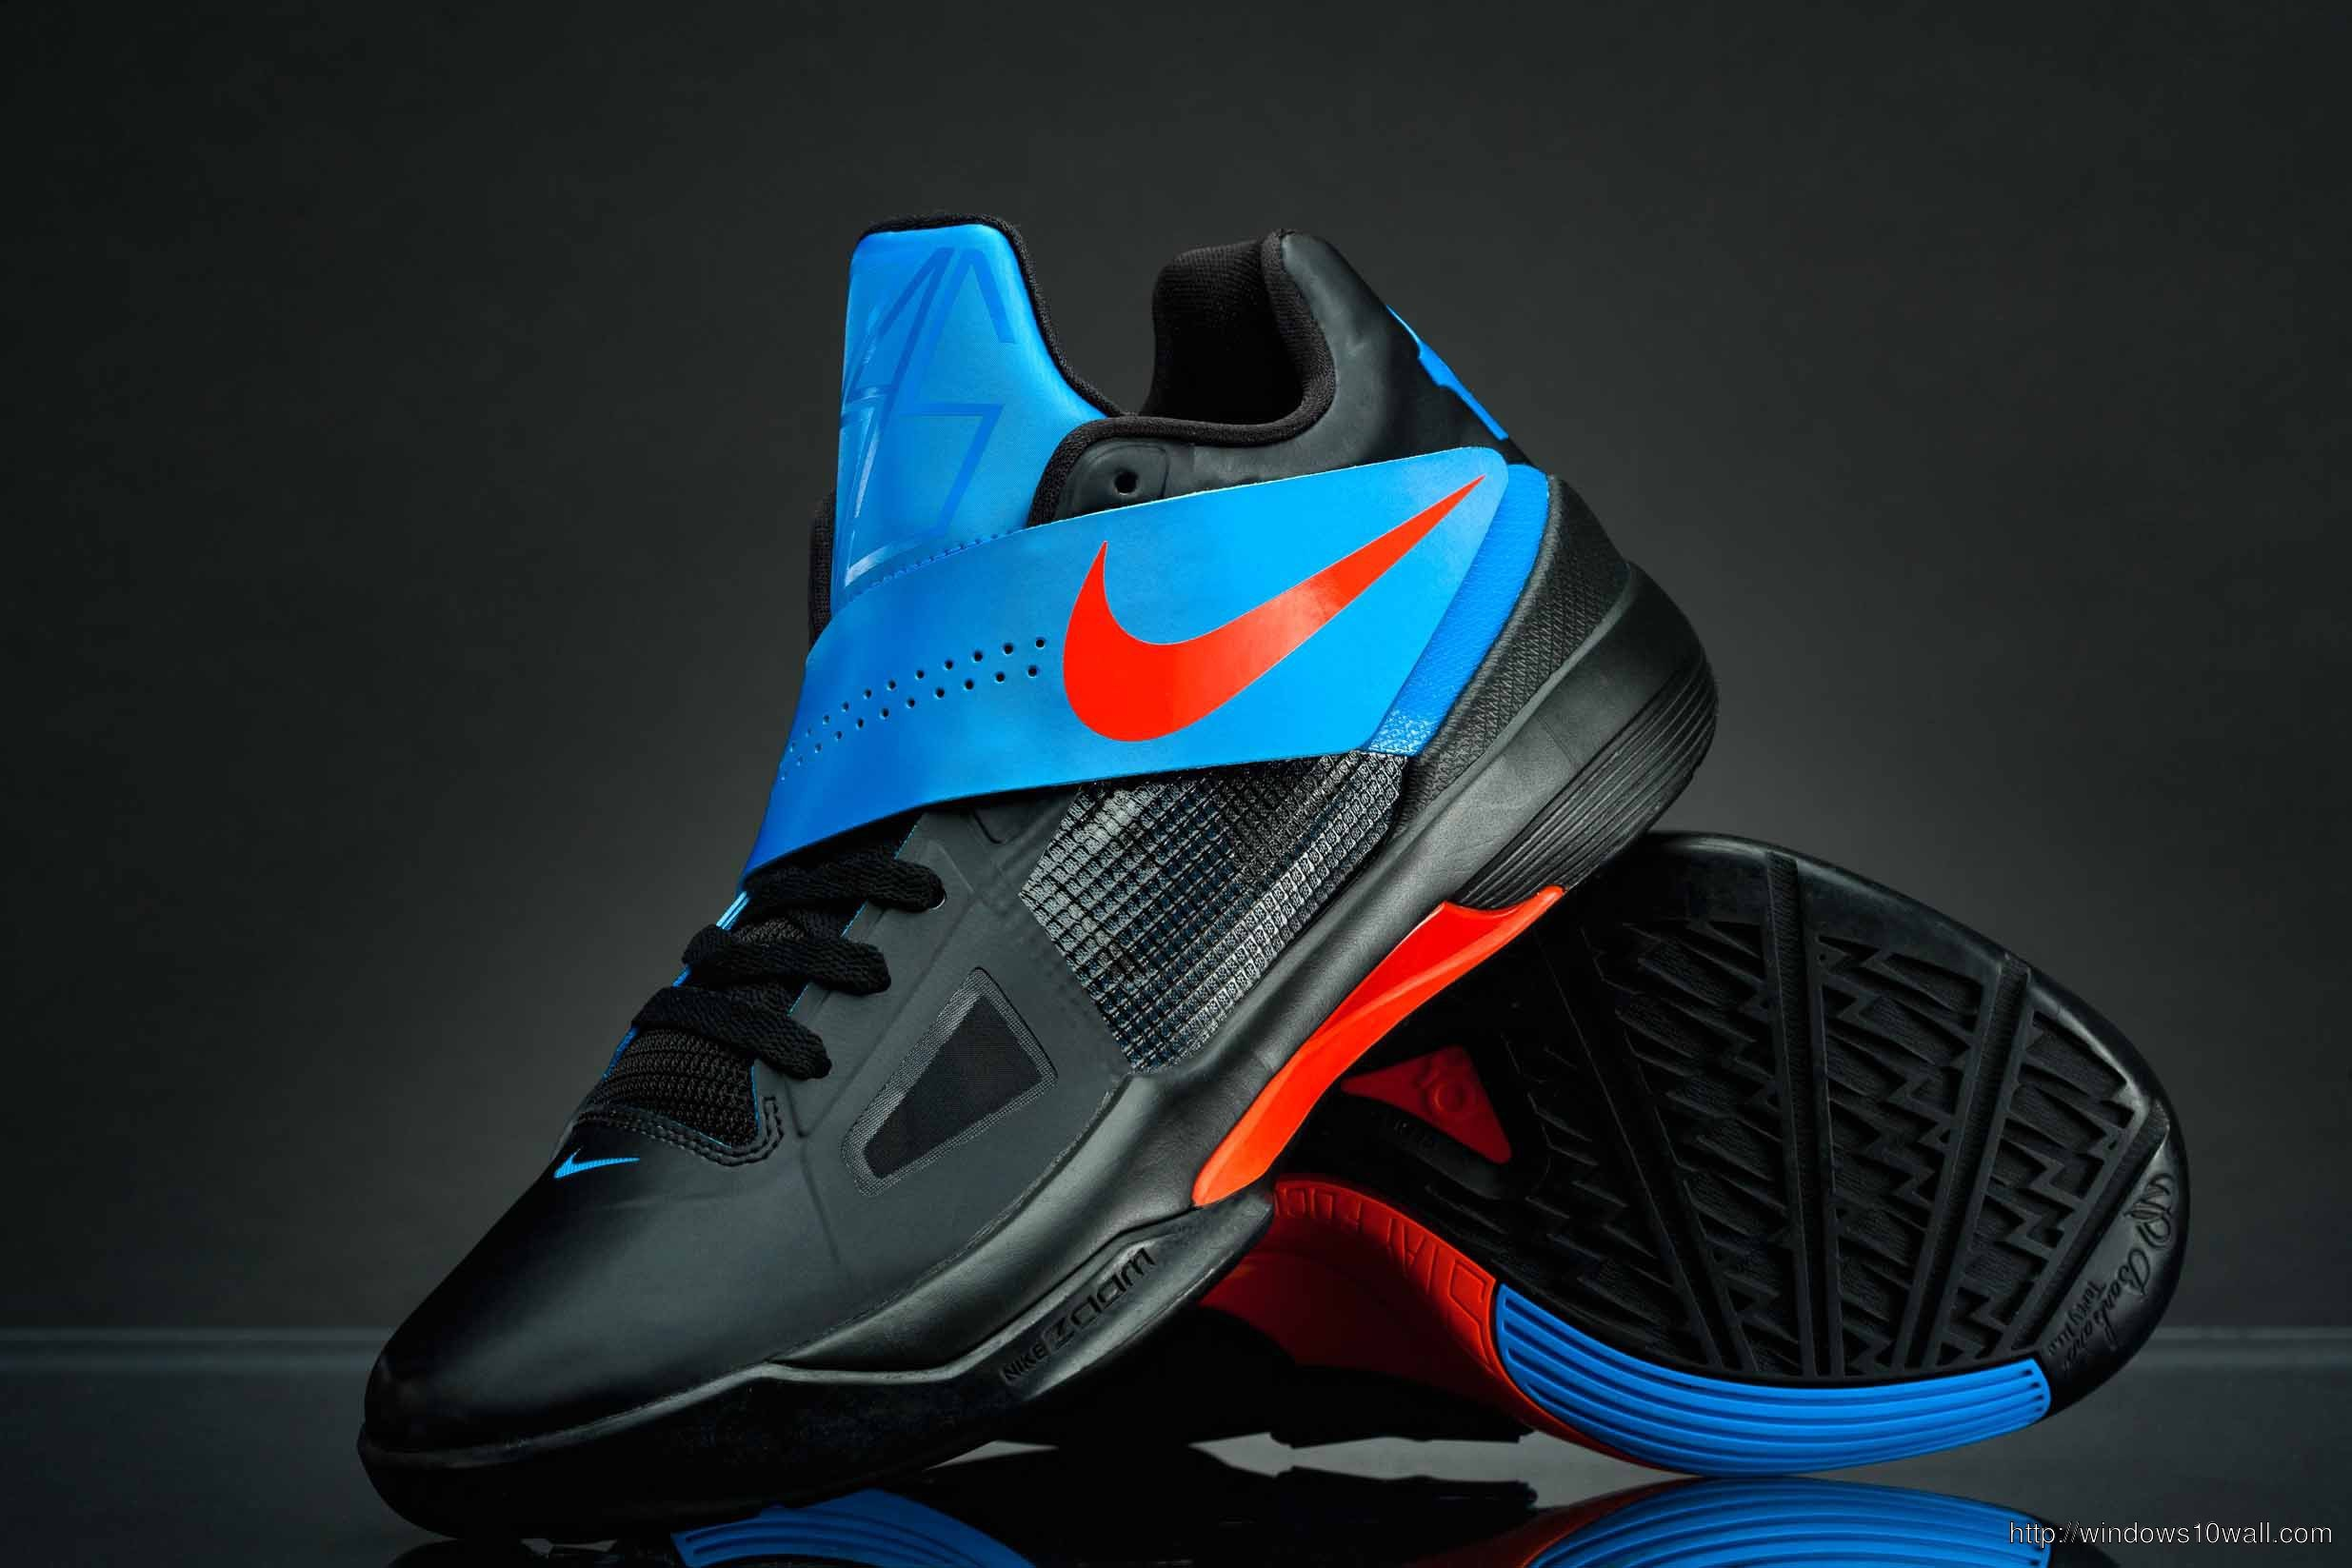 2470x1647 Kevin Durant Shoes HD Wallpapers. 2470x1647 0.206 MB